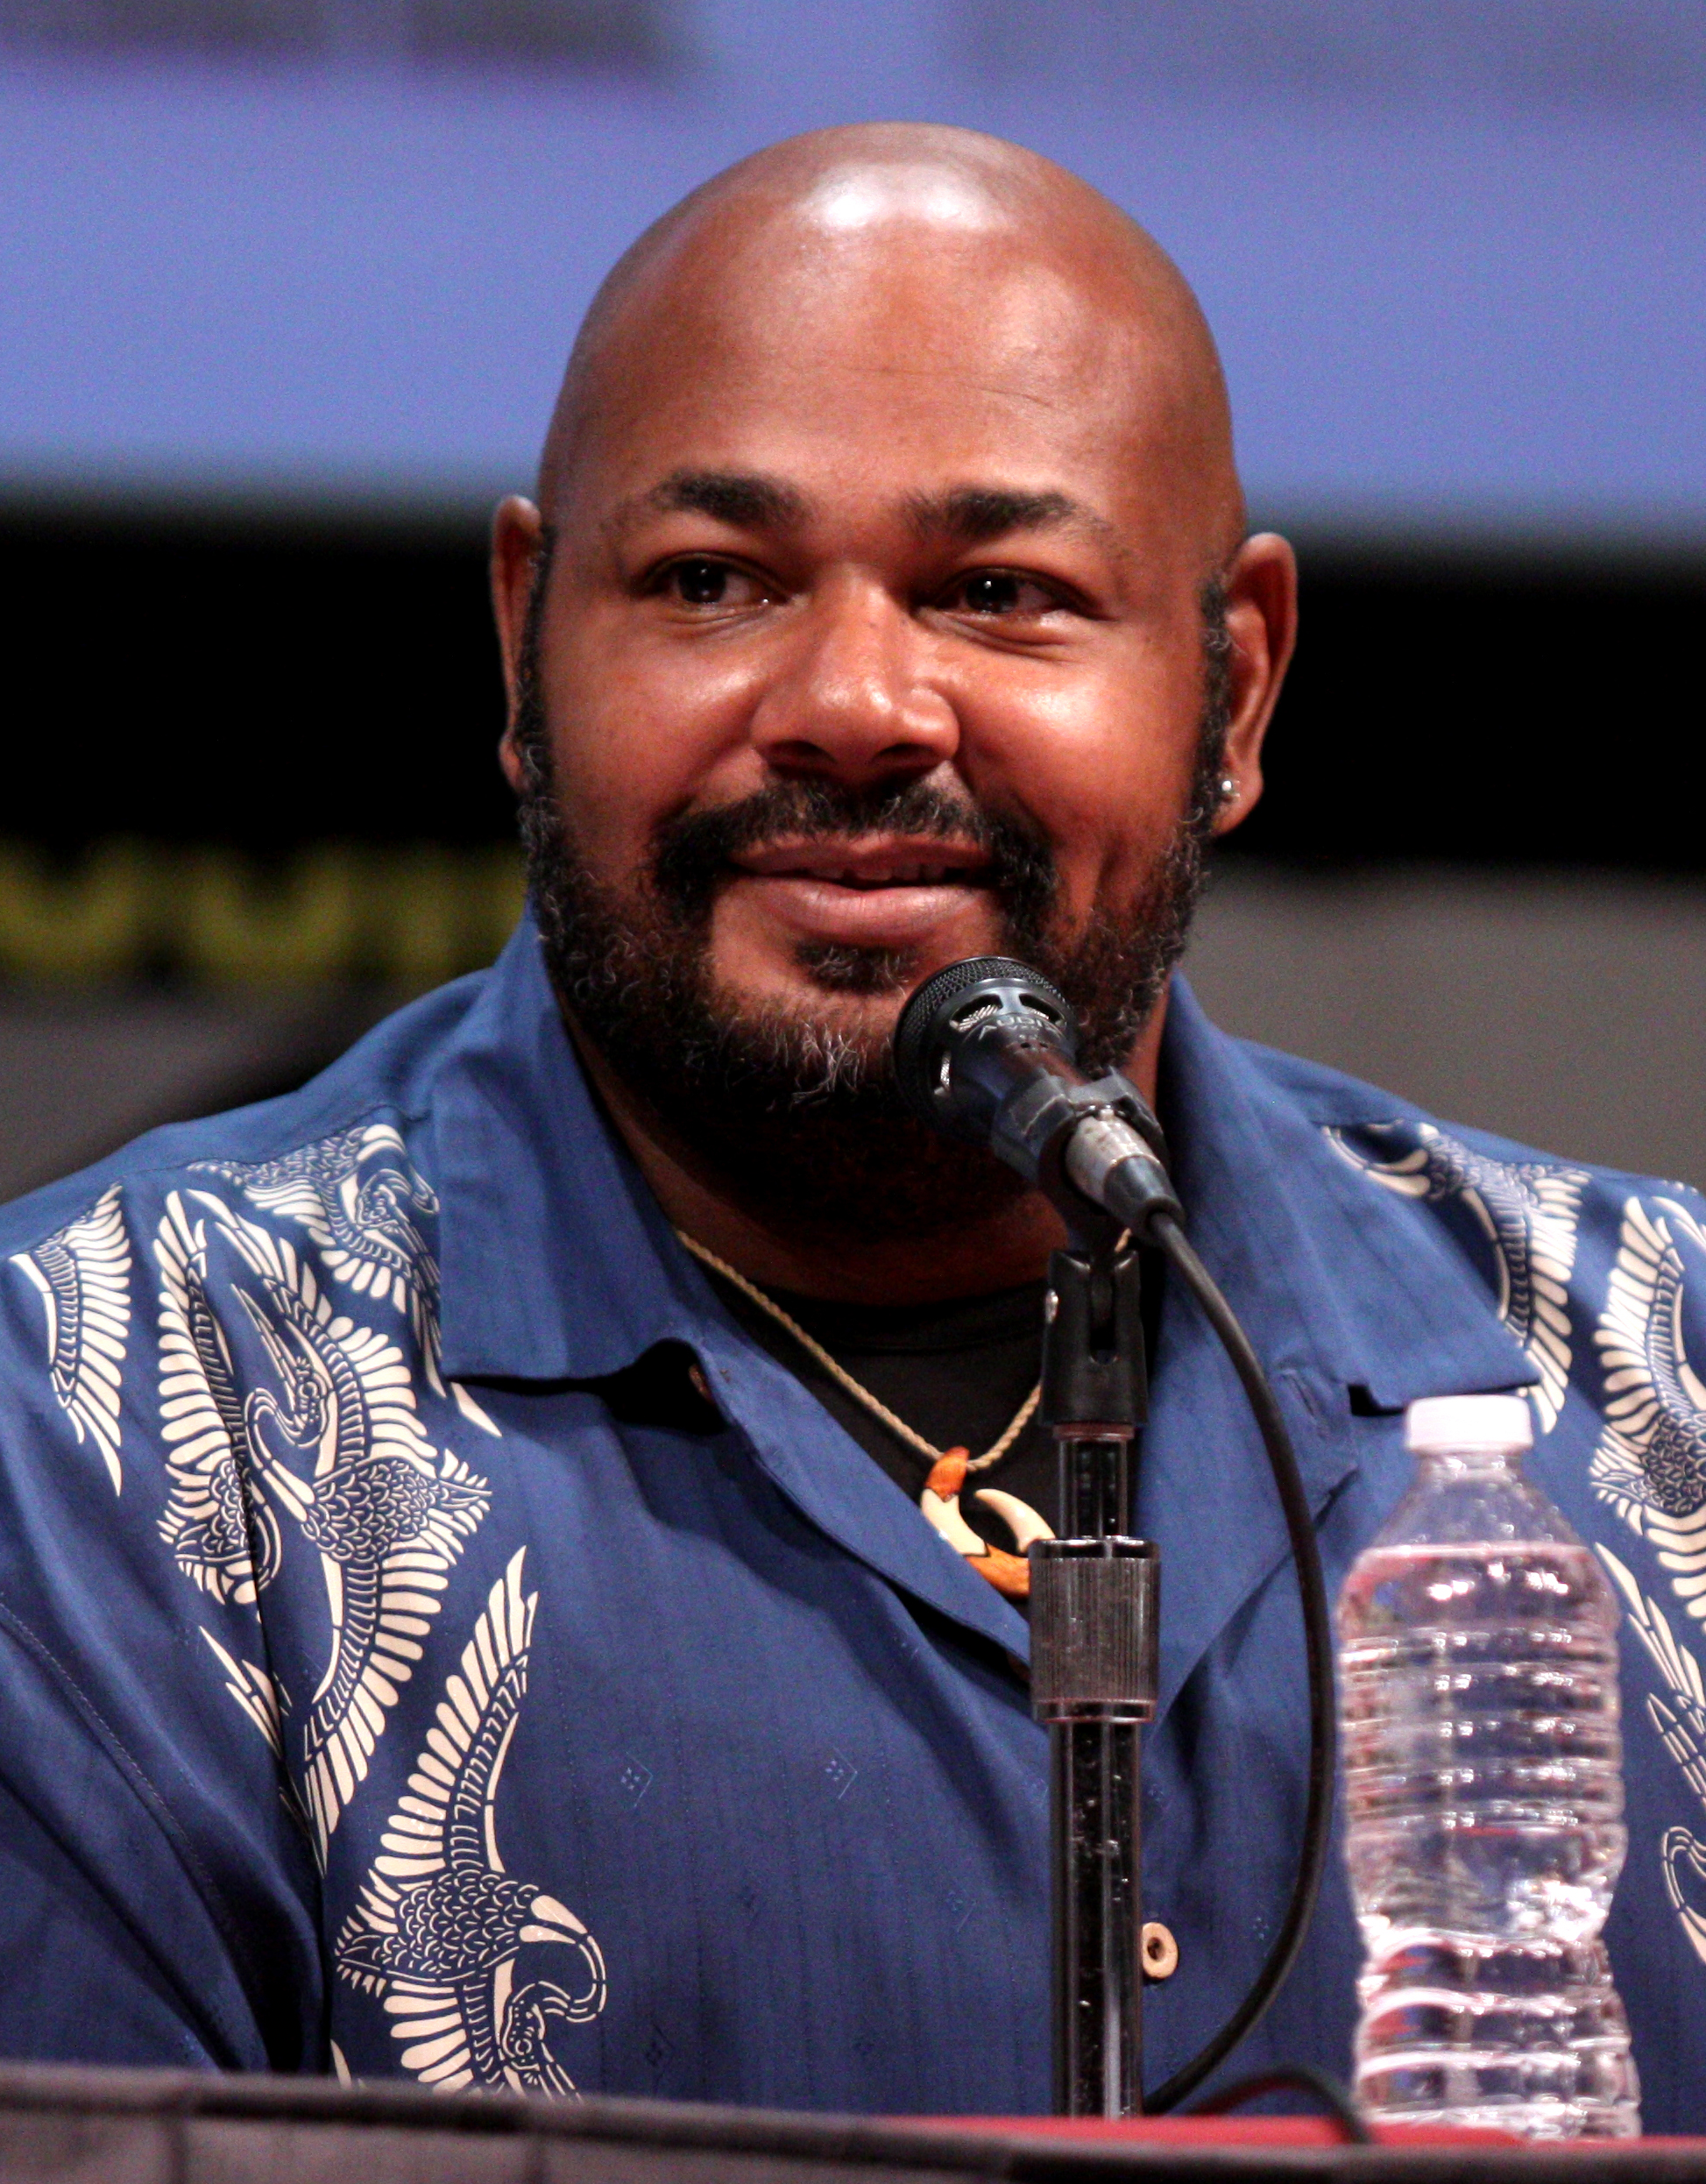 kevin michael richardson star wars